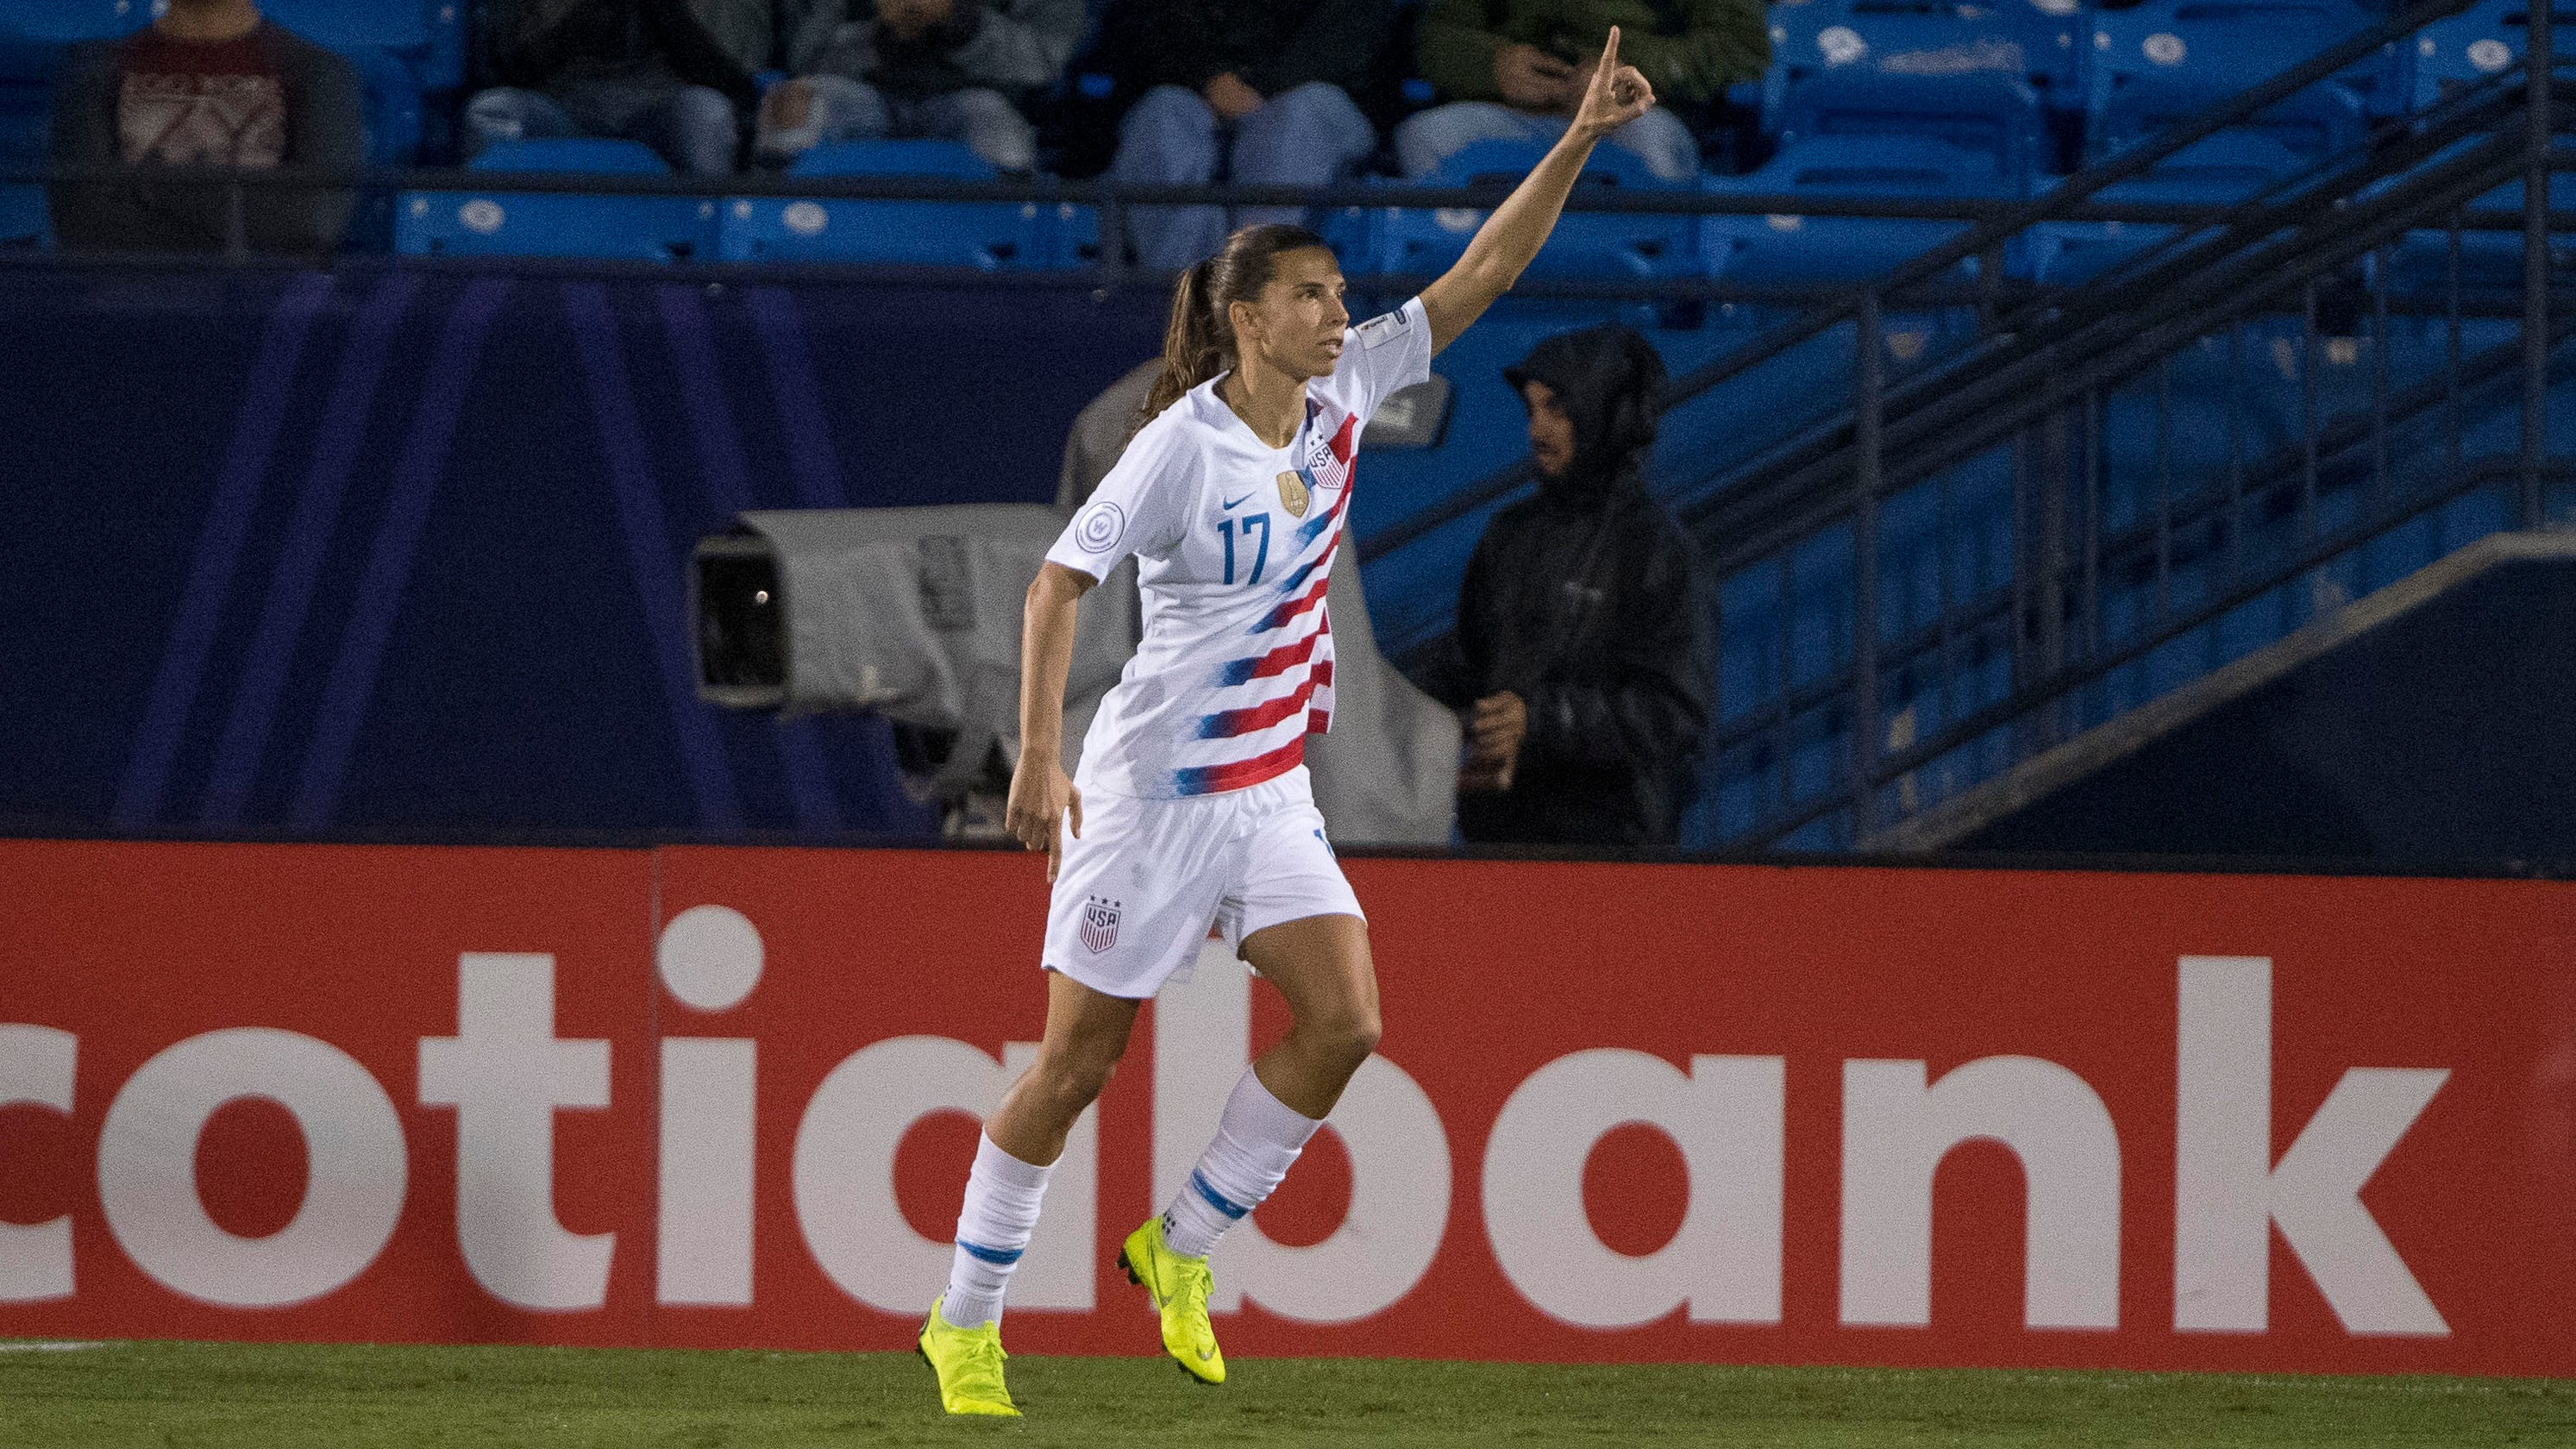 U.S. women's national soccer team qualifies for 2019 World Cup in France